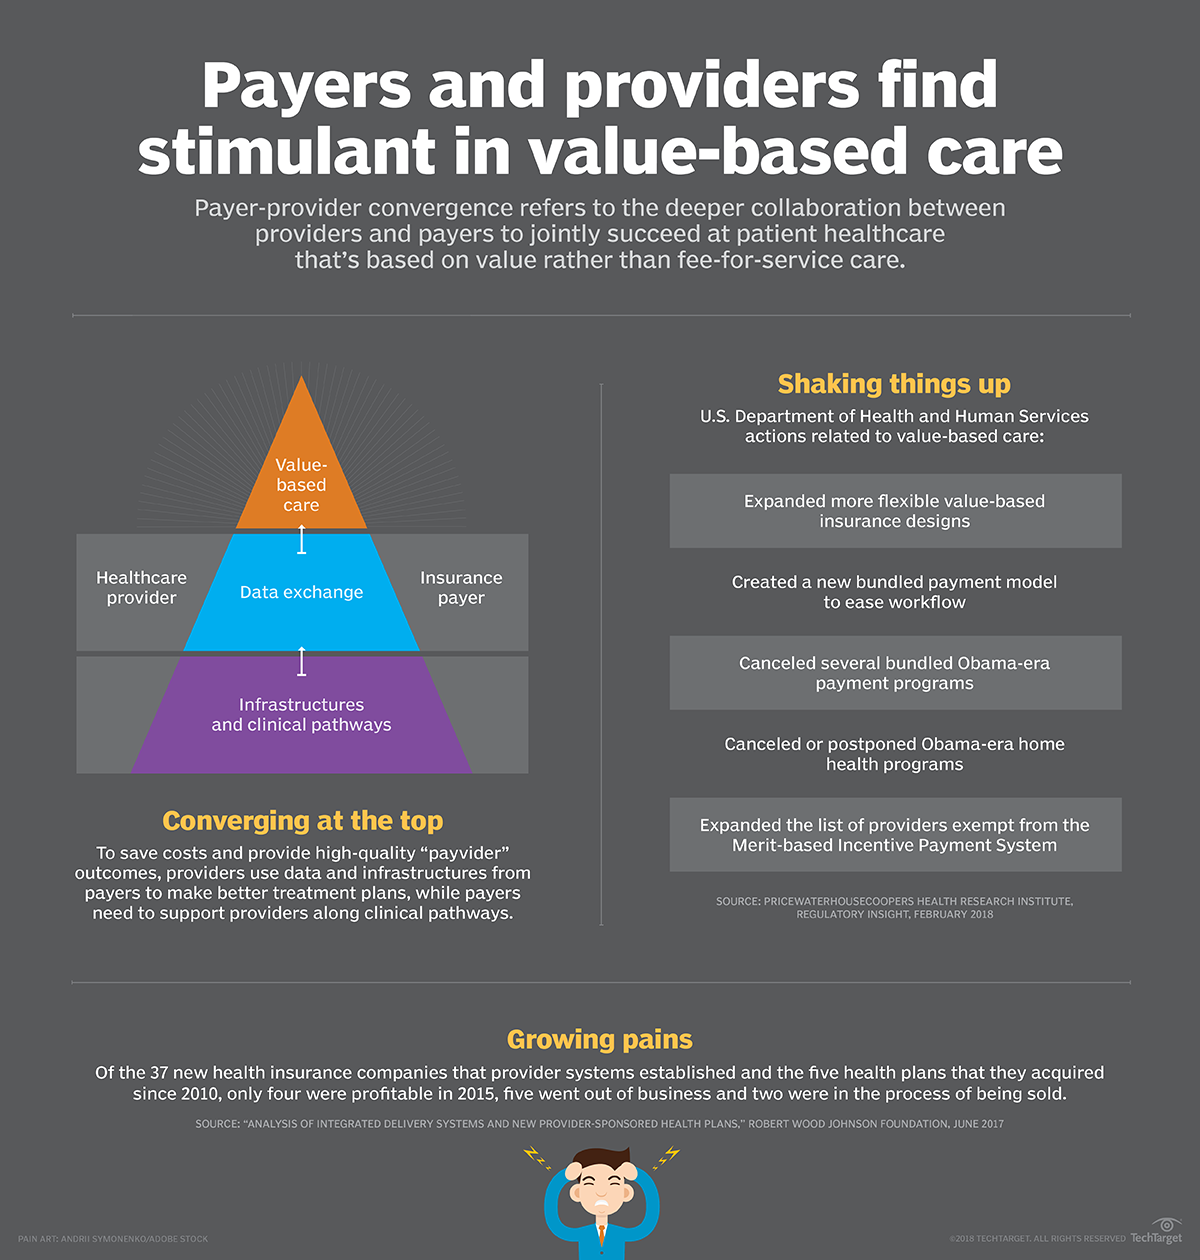 Value-based care spurs payer-provider convergence